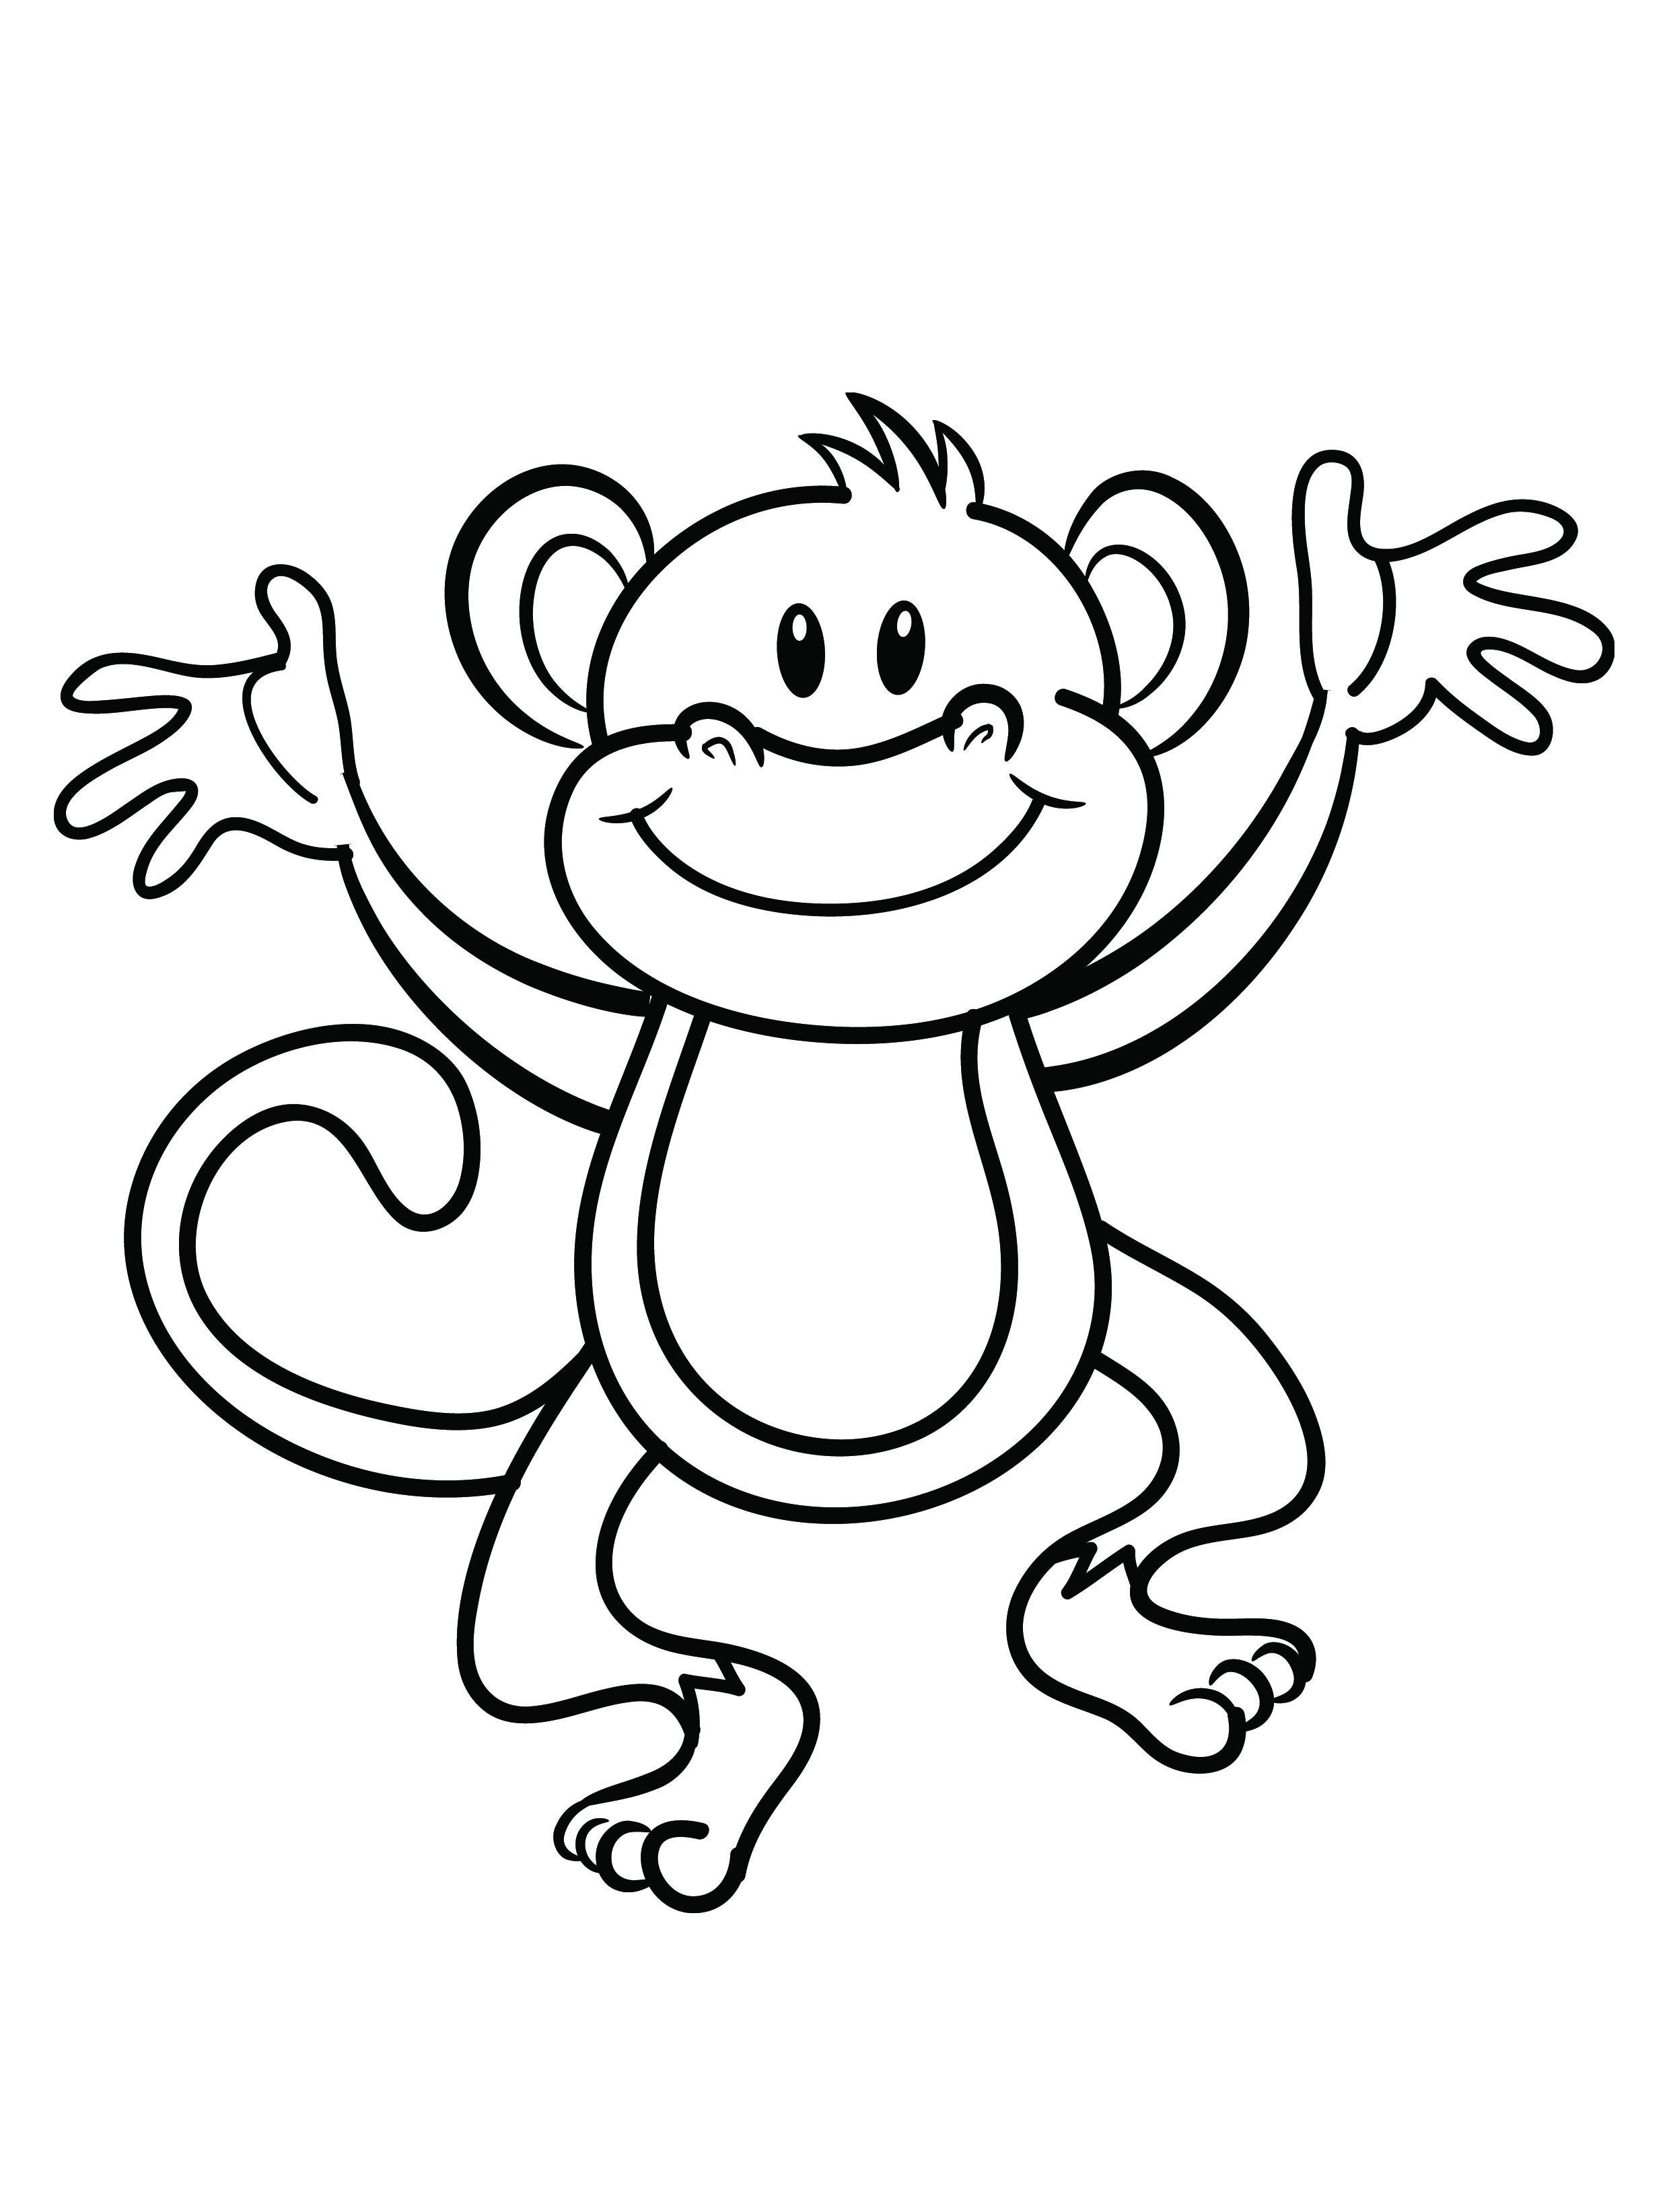 Monkey coloring #14, Download drawings